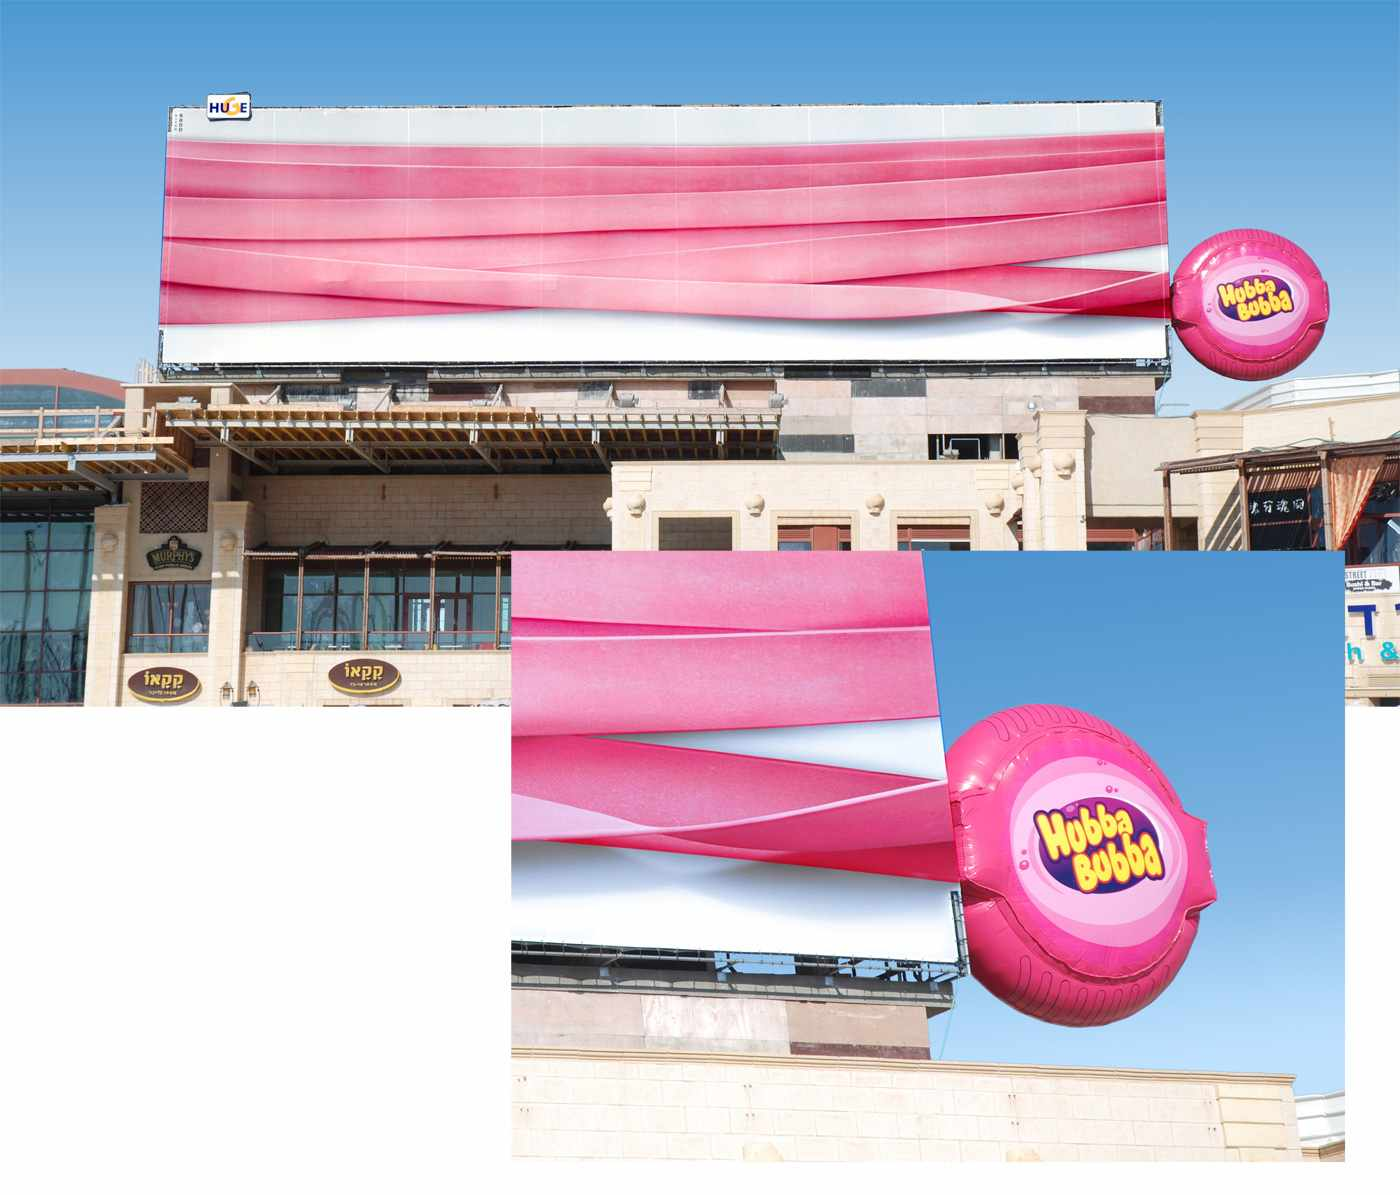 Hubba Bubba: The longest chewing gum ever